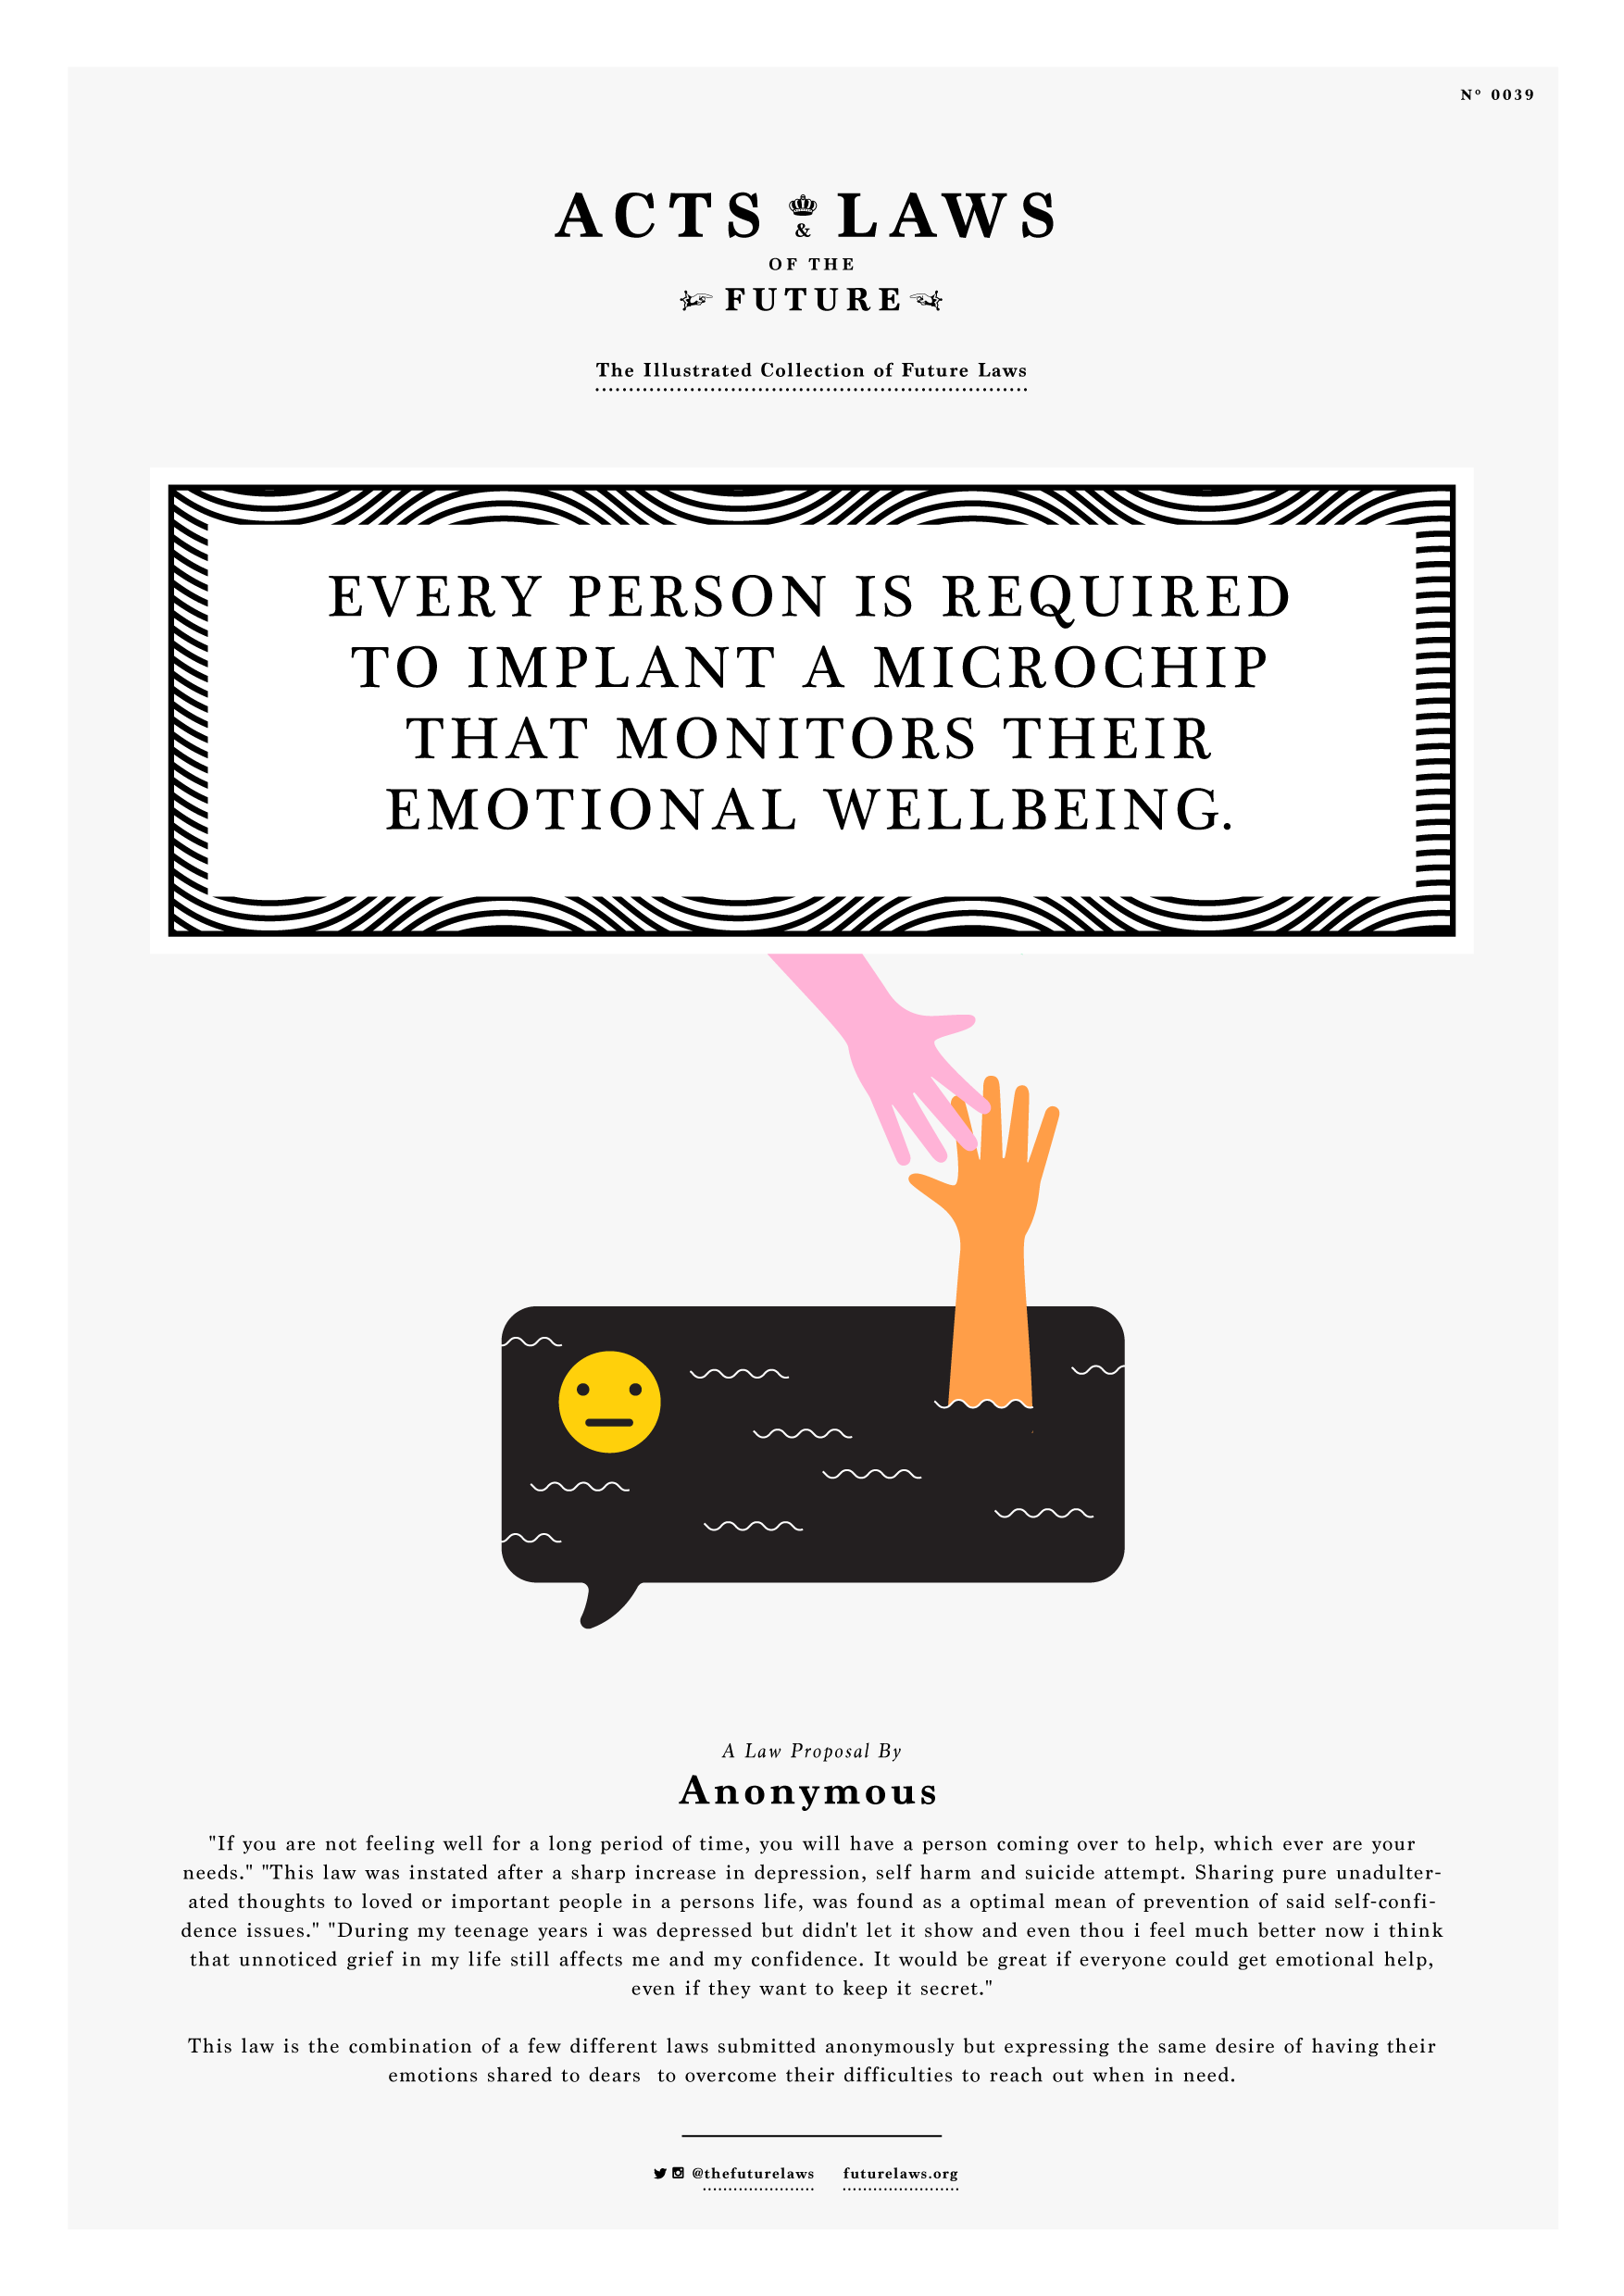 Every person is required to implant a microchip that monitors their emotional wellbeing.